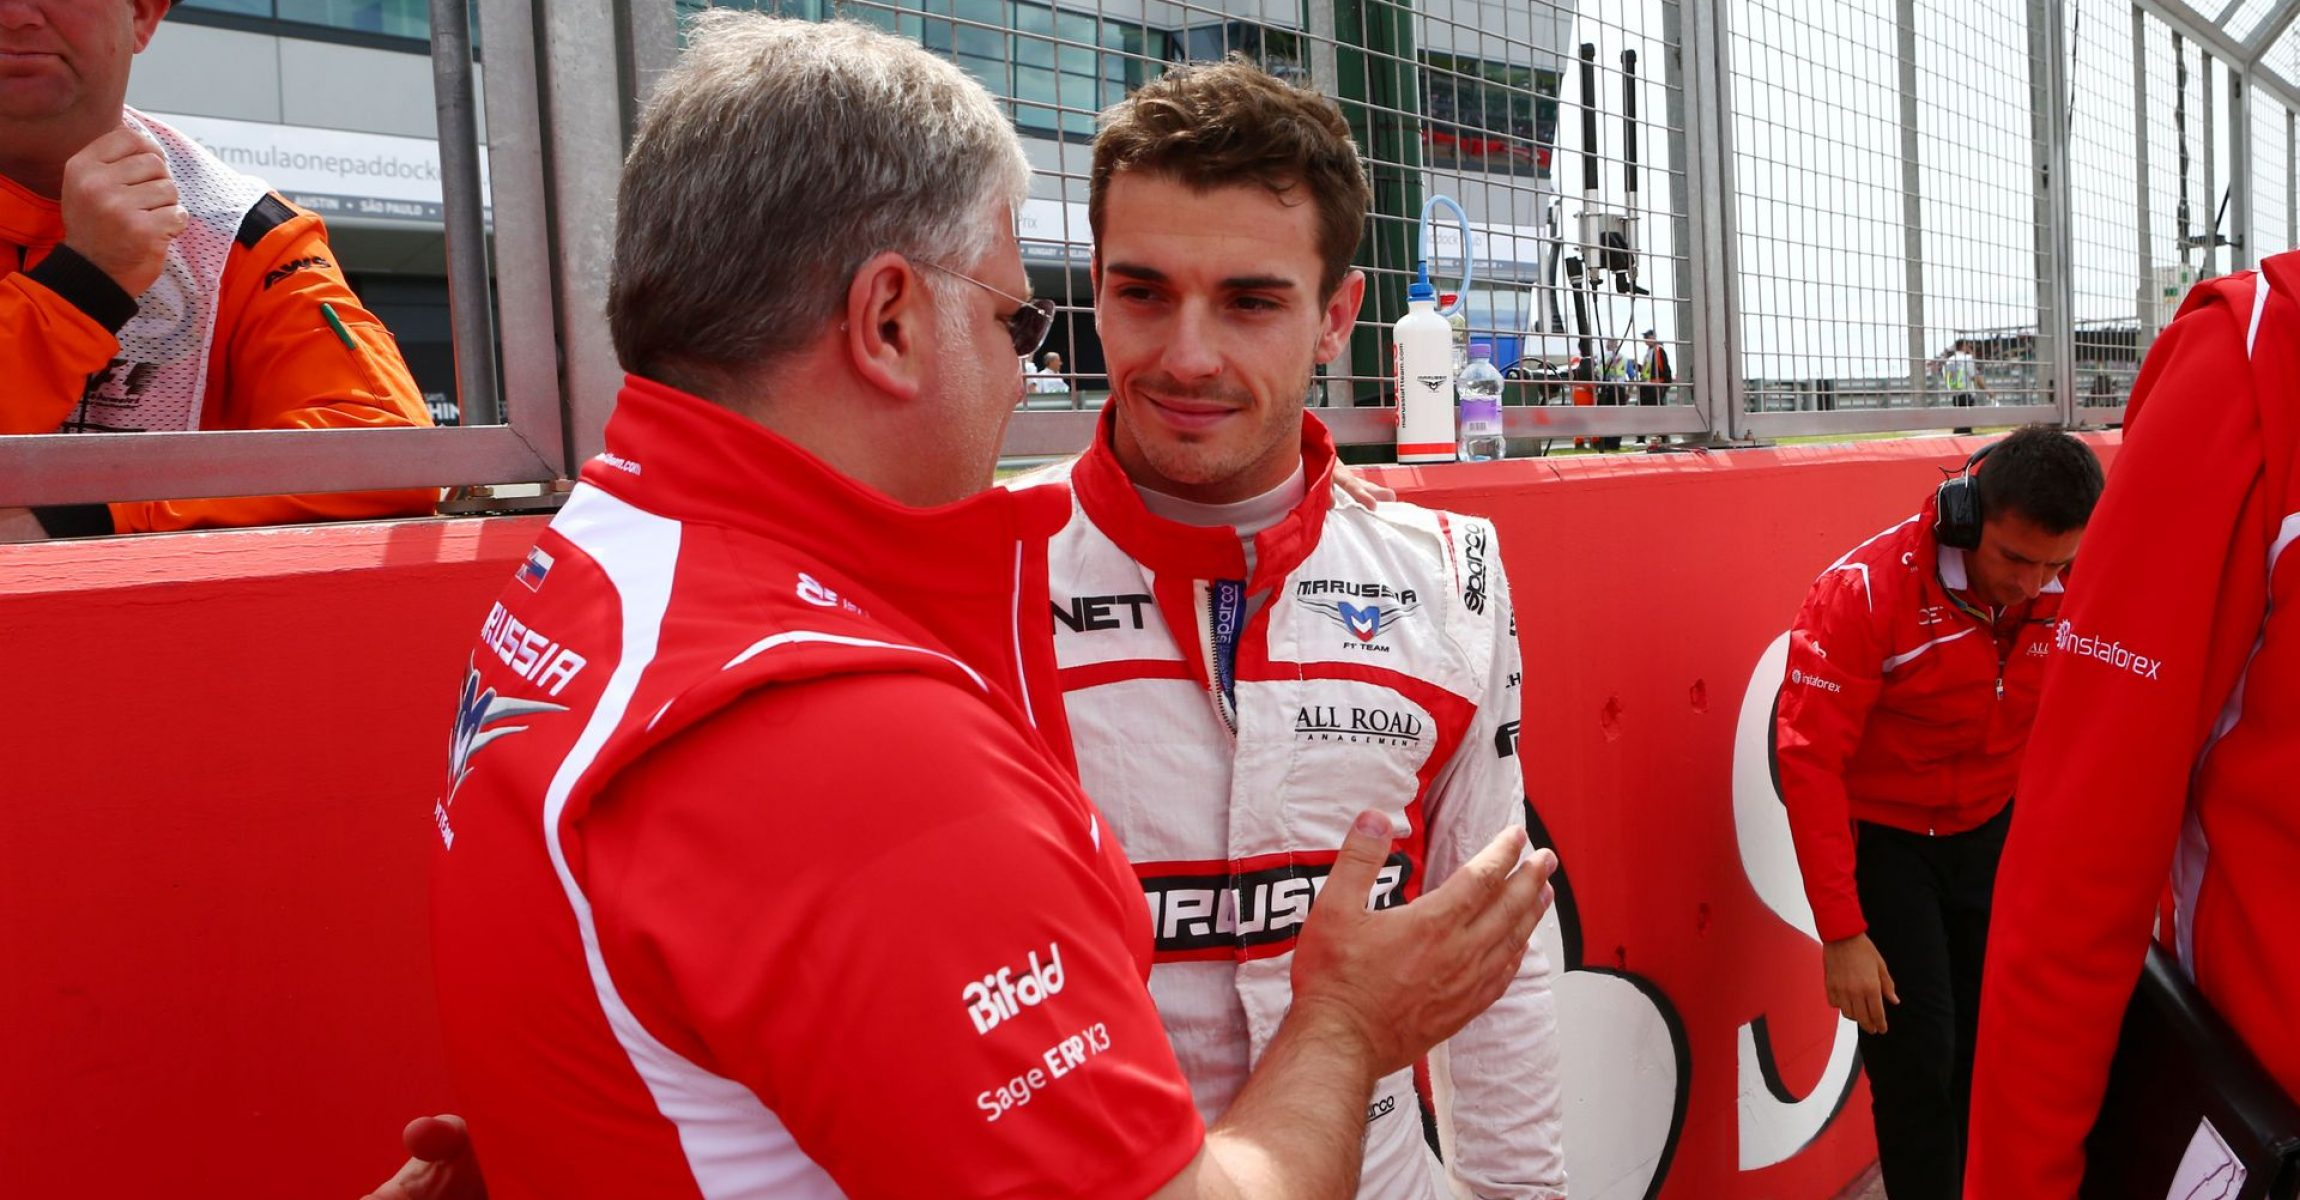 (L to R): Andrei Cheglakov (RUS) Marussia Team Owner on the grid with Jules Bianchi (FRA) Marussia F1 Team. 06.07.2014. Formula 1 World Championship, Rd 9, British Grand Prix, Silverstone, England, Race Day.